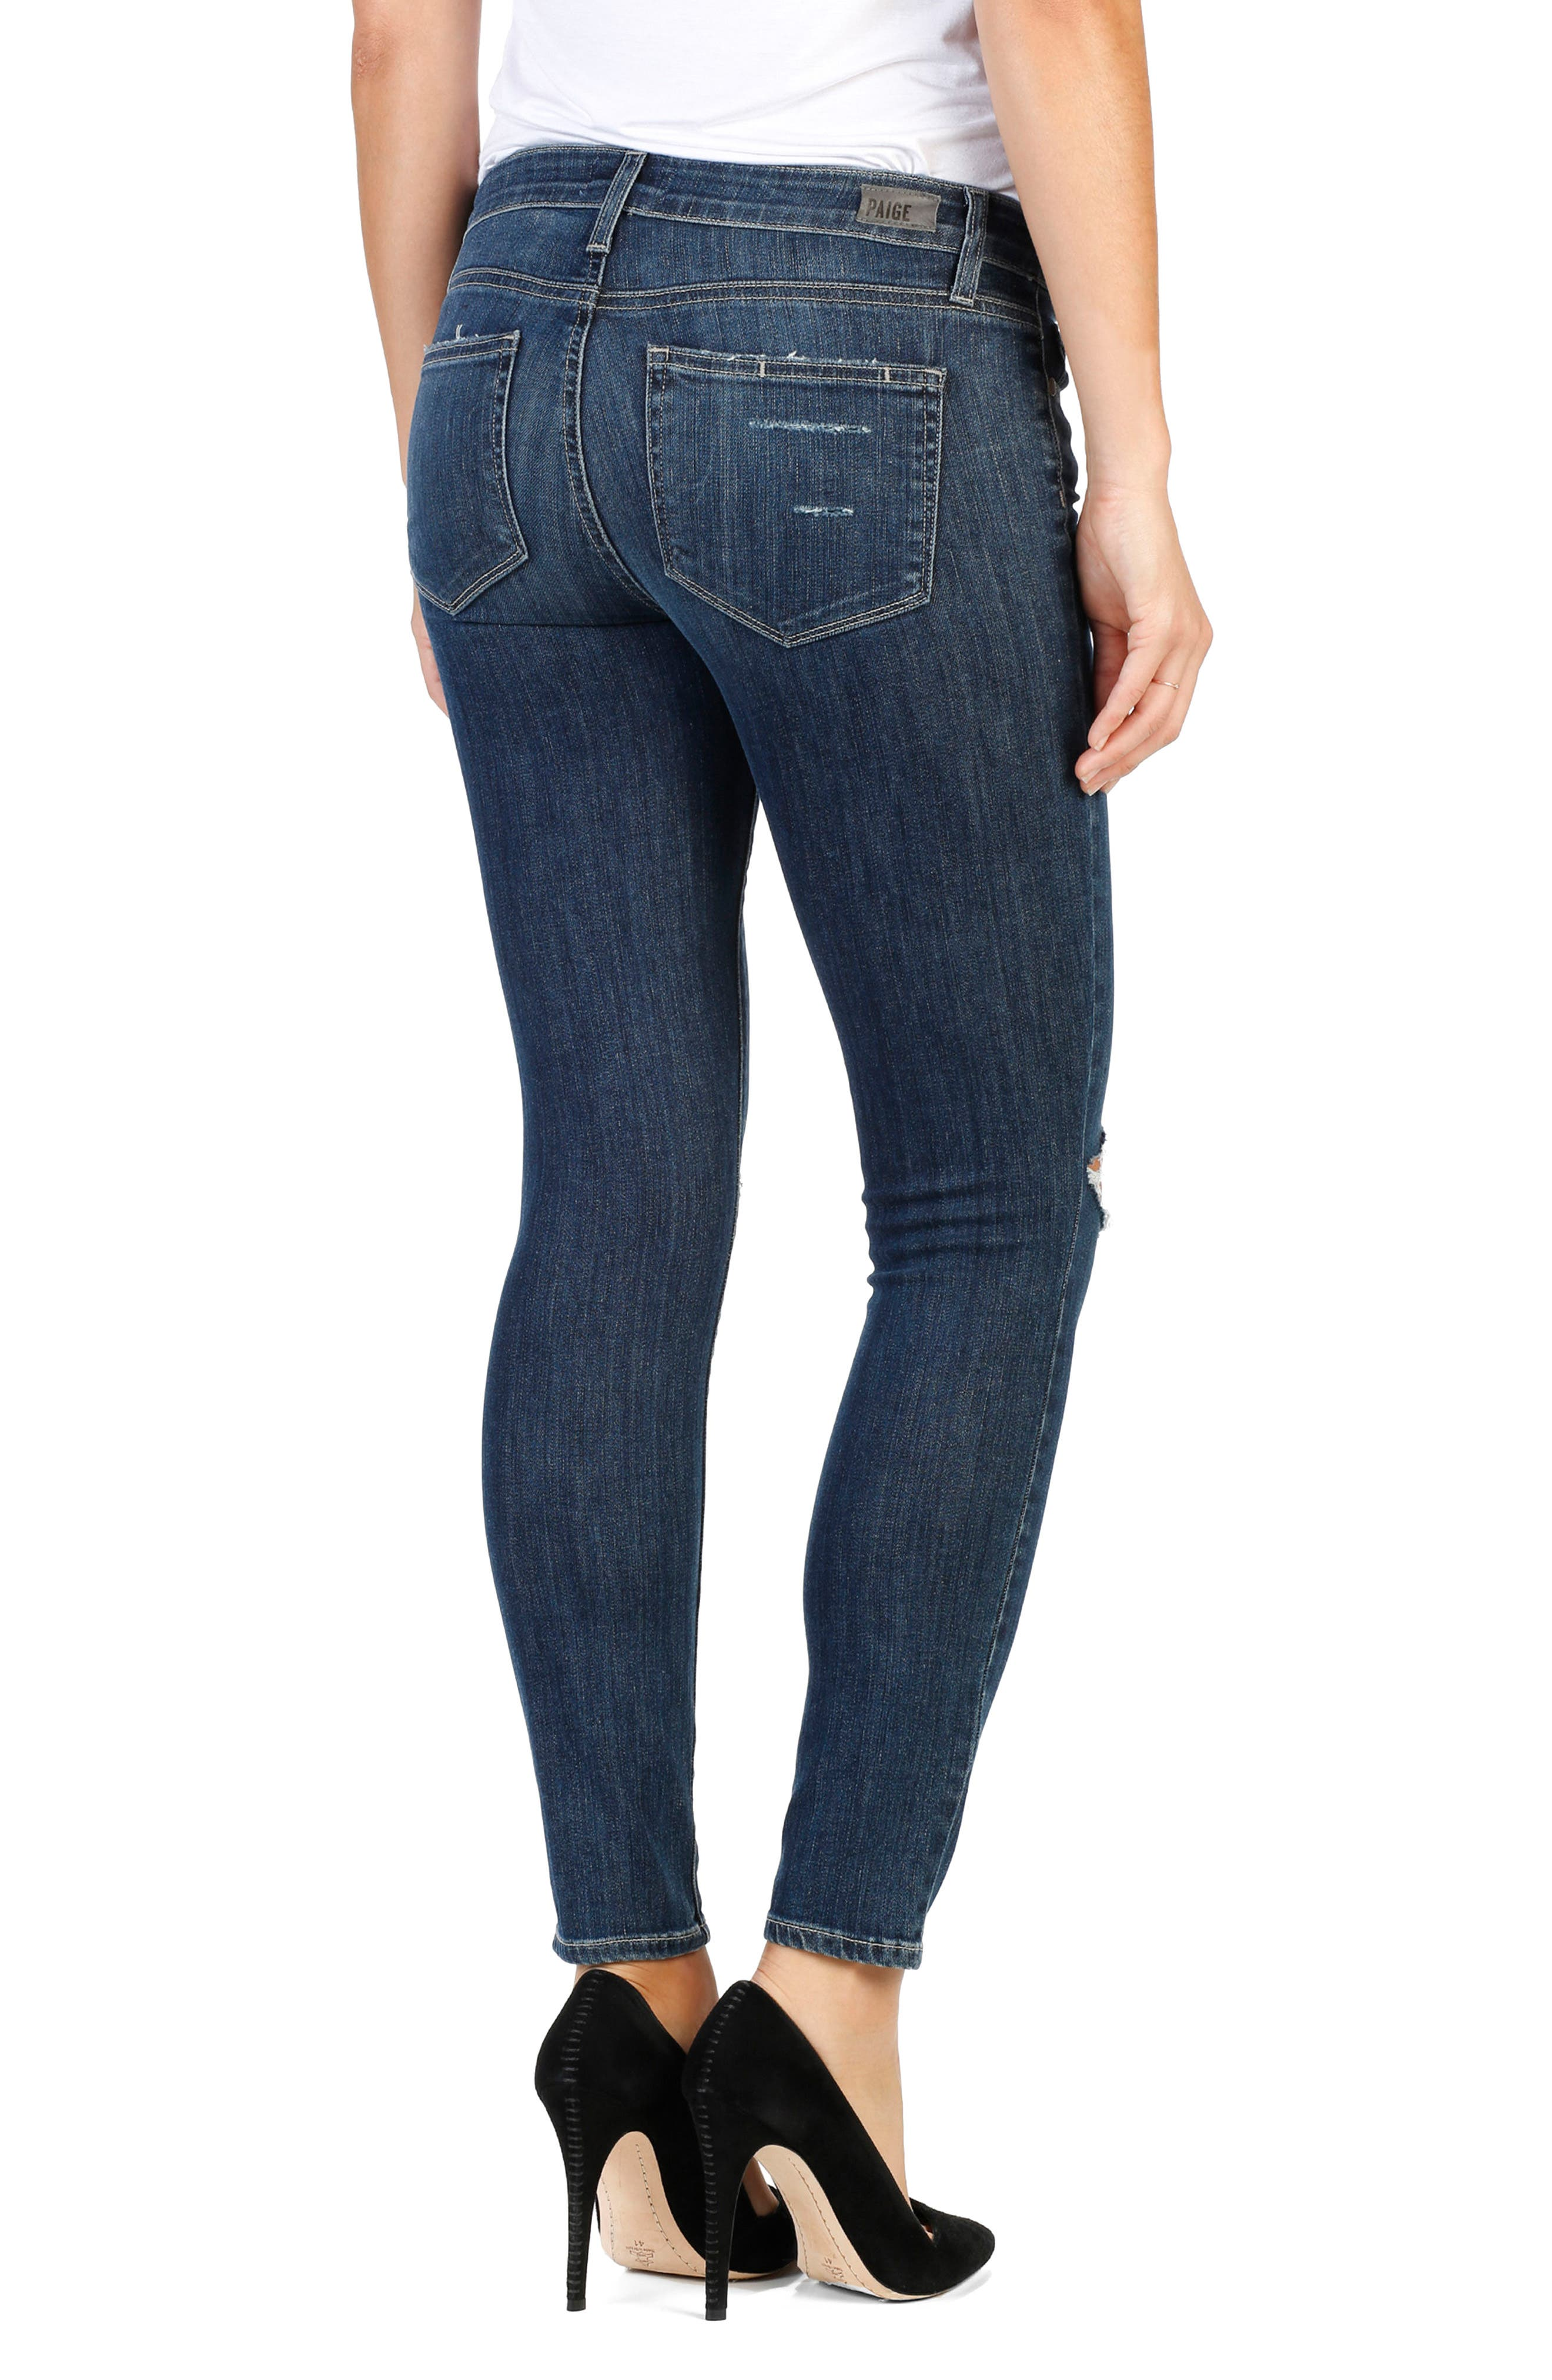 Legacy - Verdugo Ankle Skinny Jeans,                             Alternate thumbnail 2, color,                             400